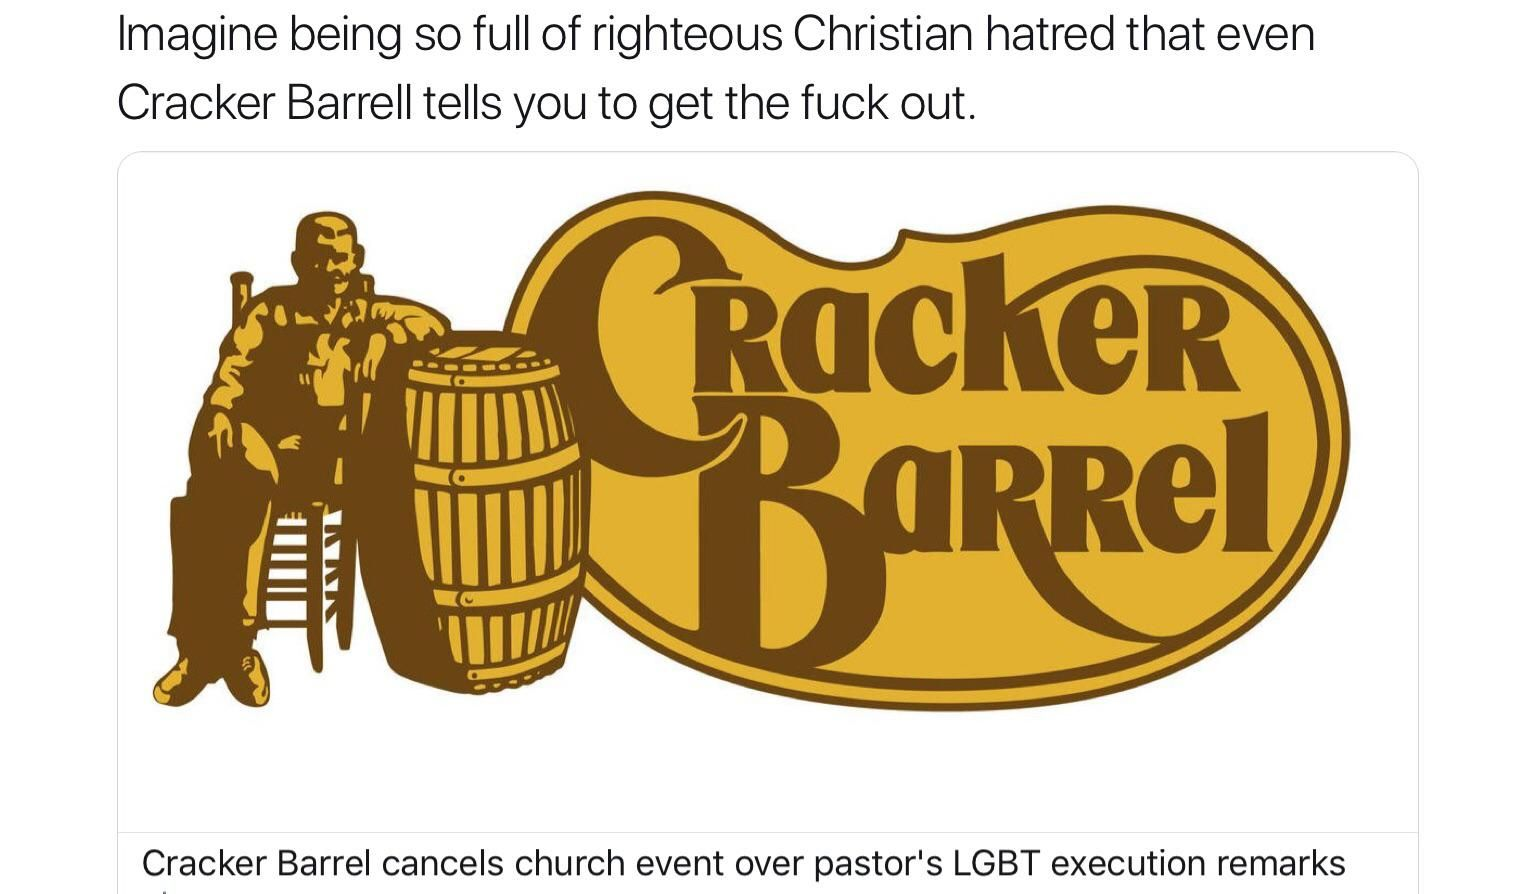 Crackers getting banned from Cracker Barrel.